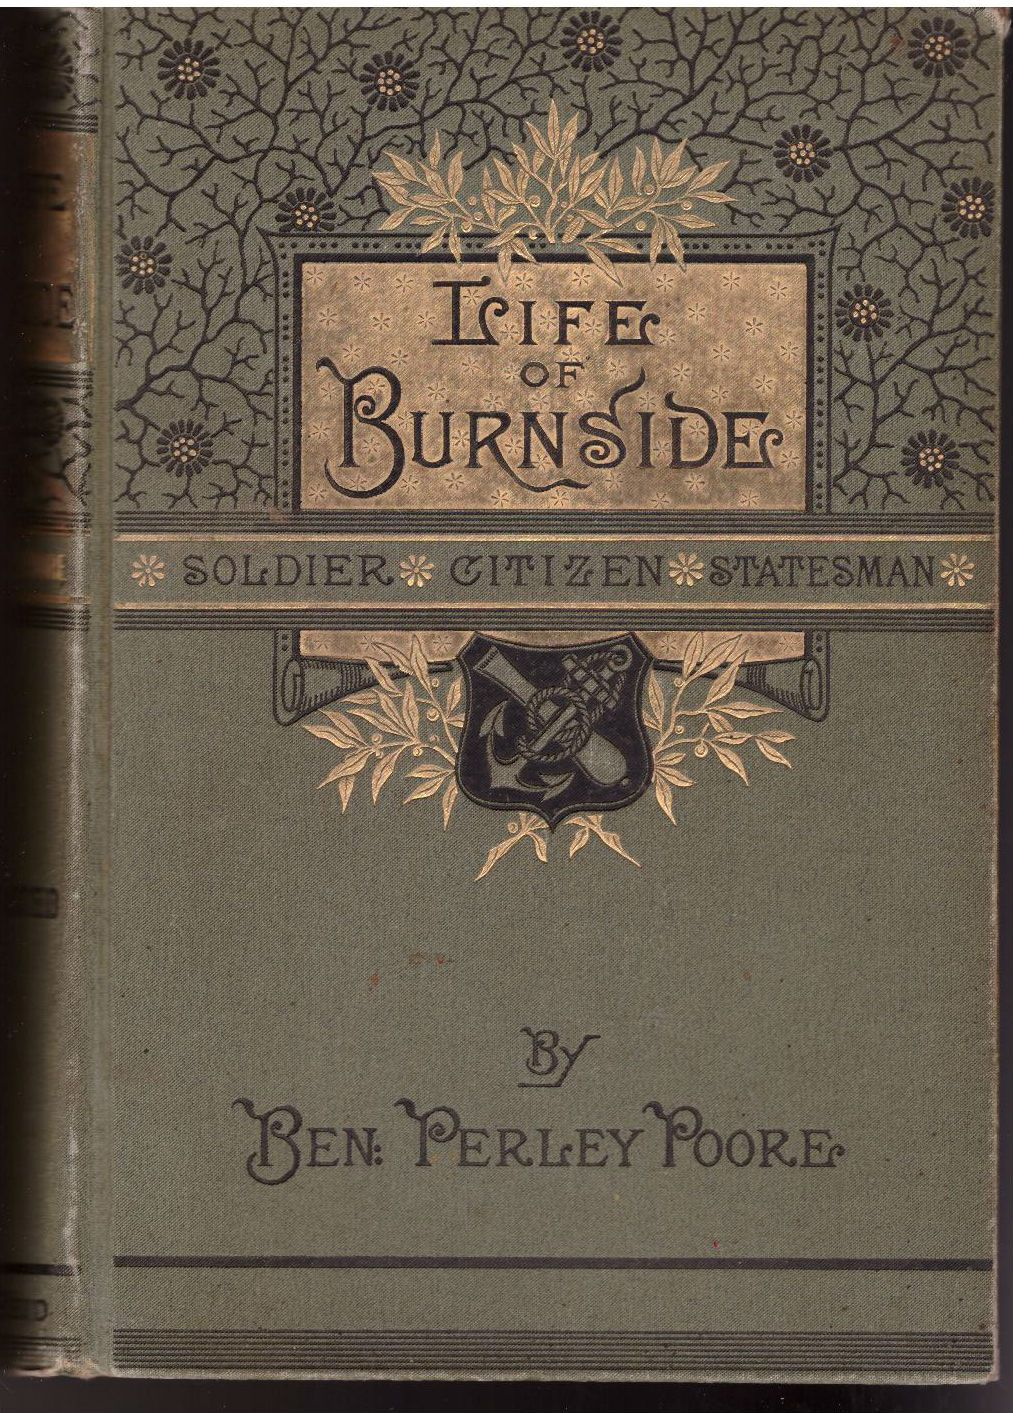 Life of Burnside, Poore Perley